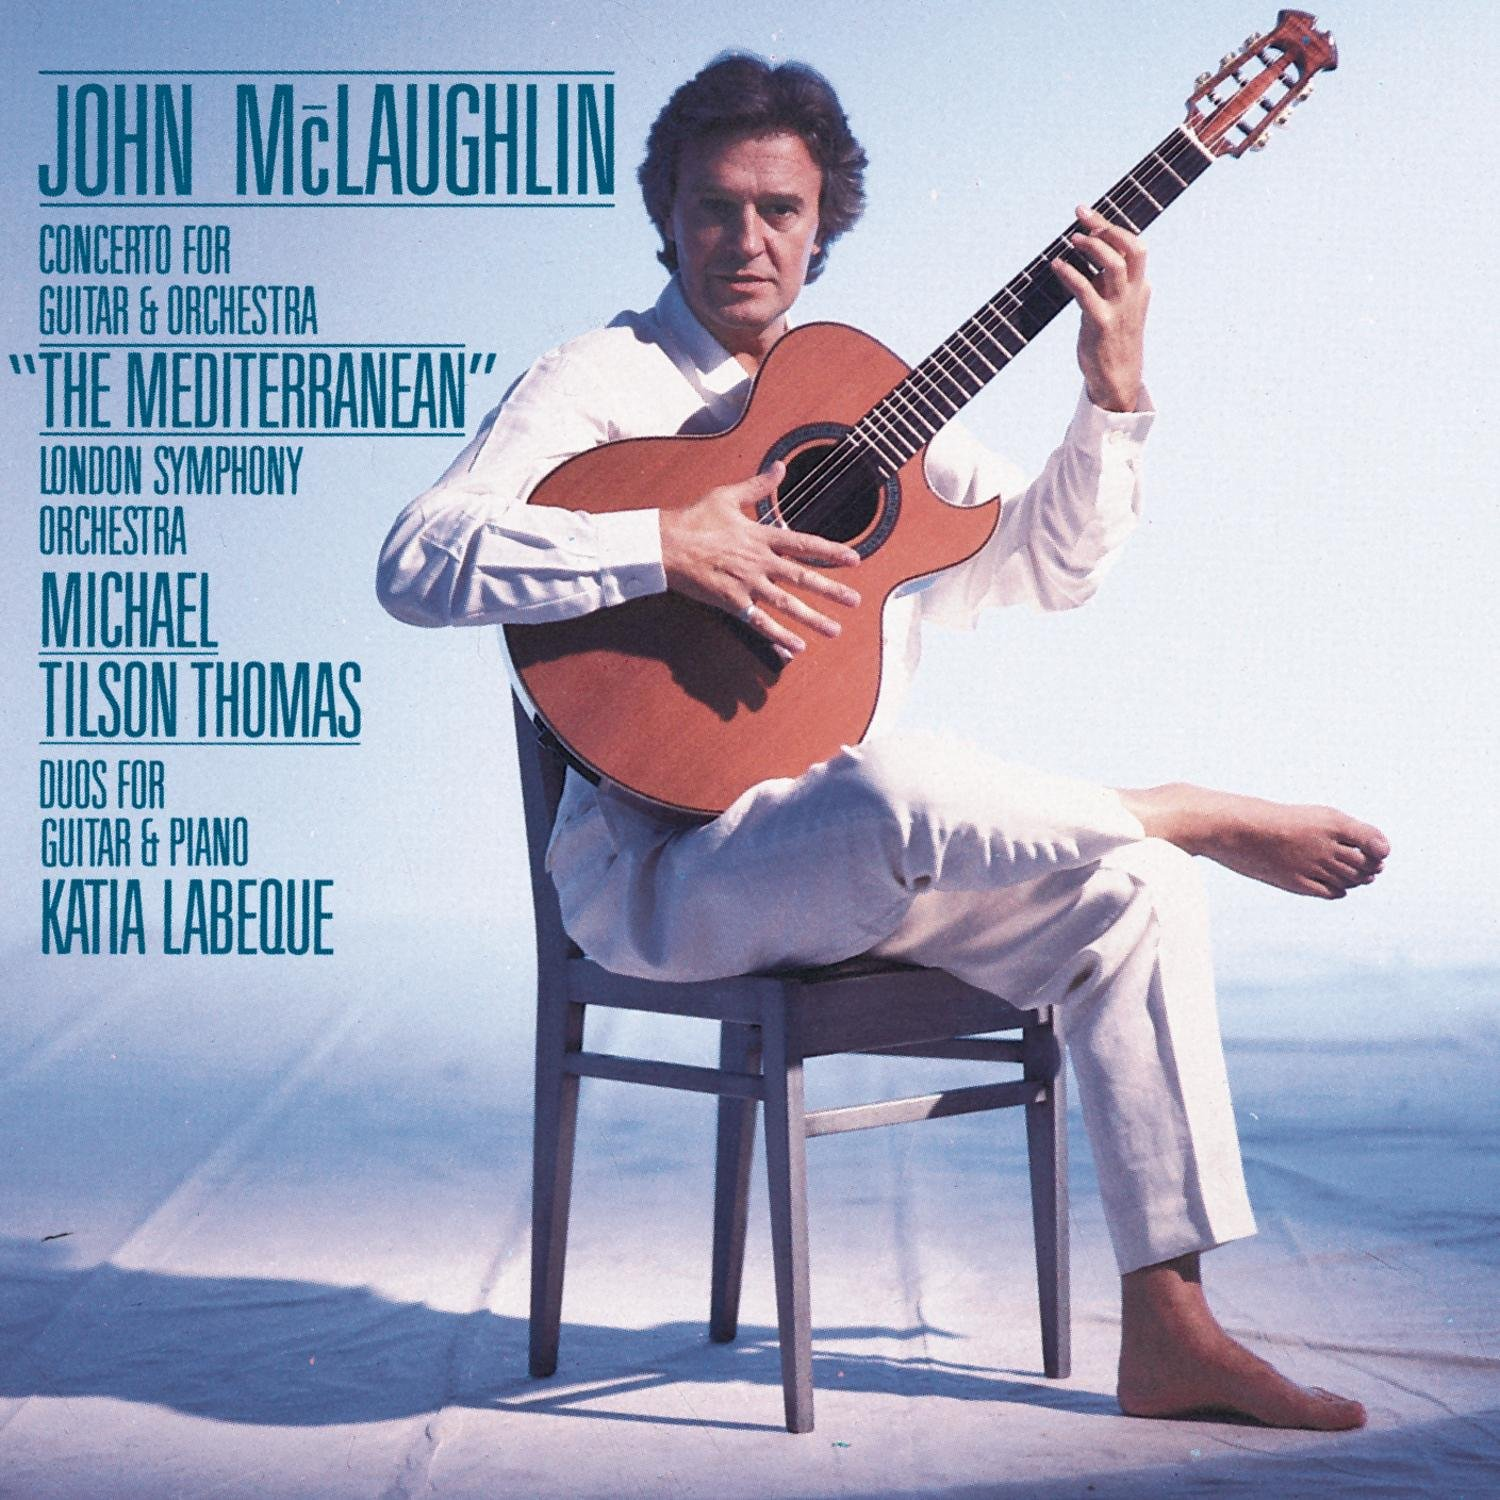 John mclaughlin this is the way i do it dvd repost | free ebooks.